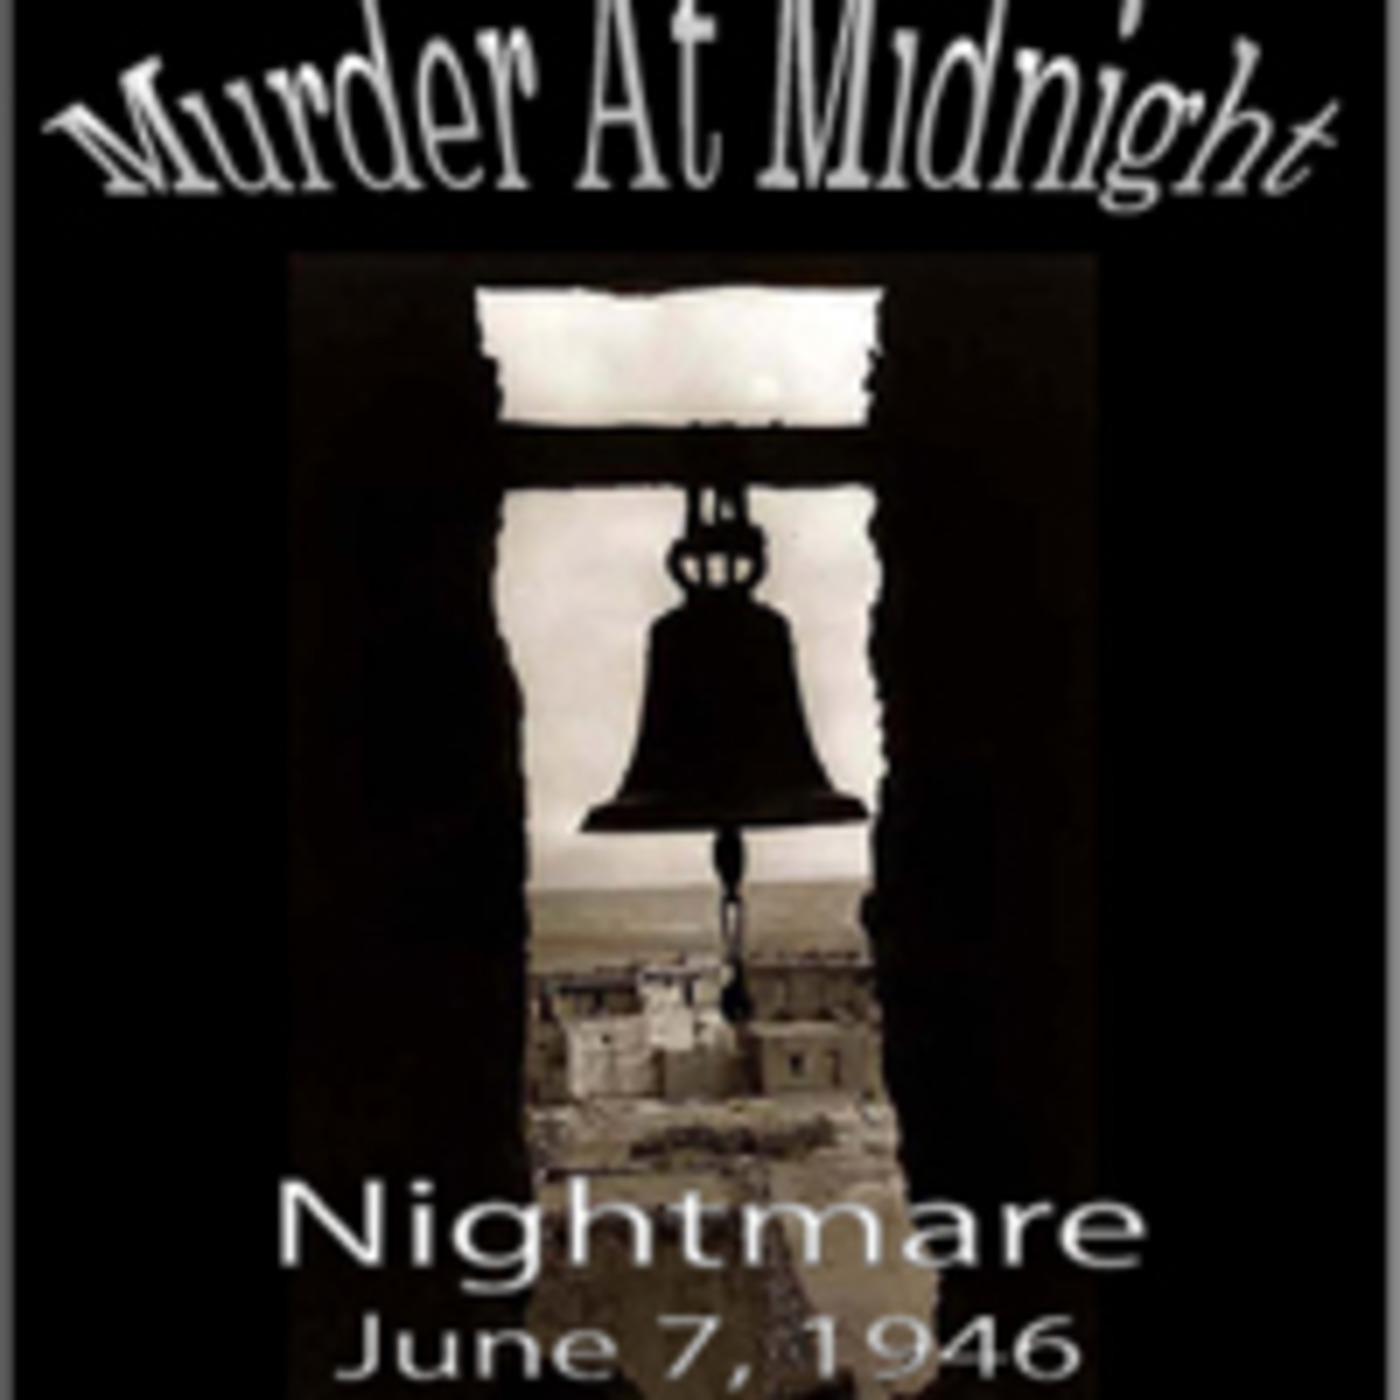 Murder At Midnight - Nightmare (06-07-46) MP3